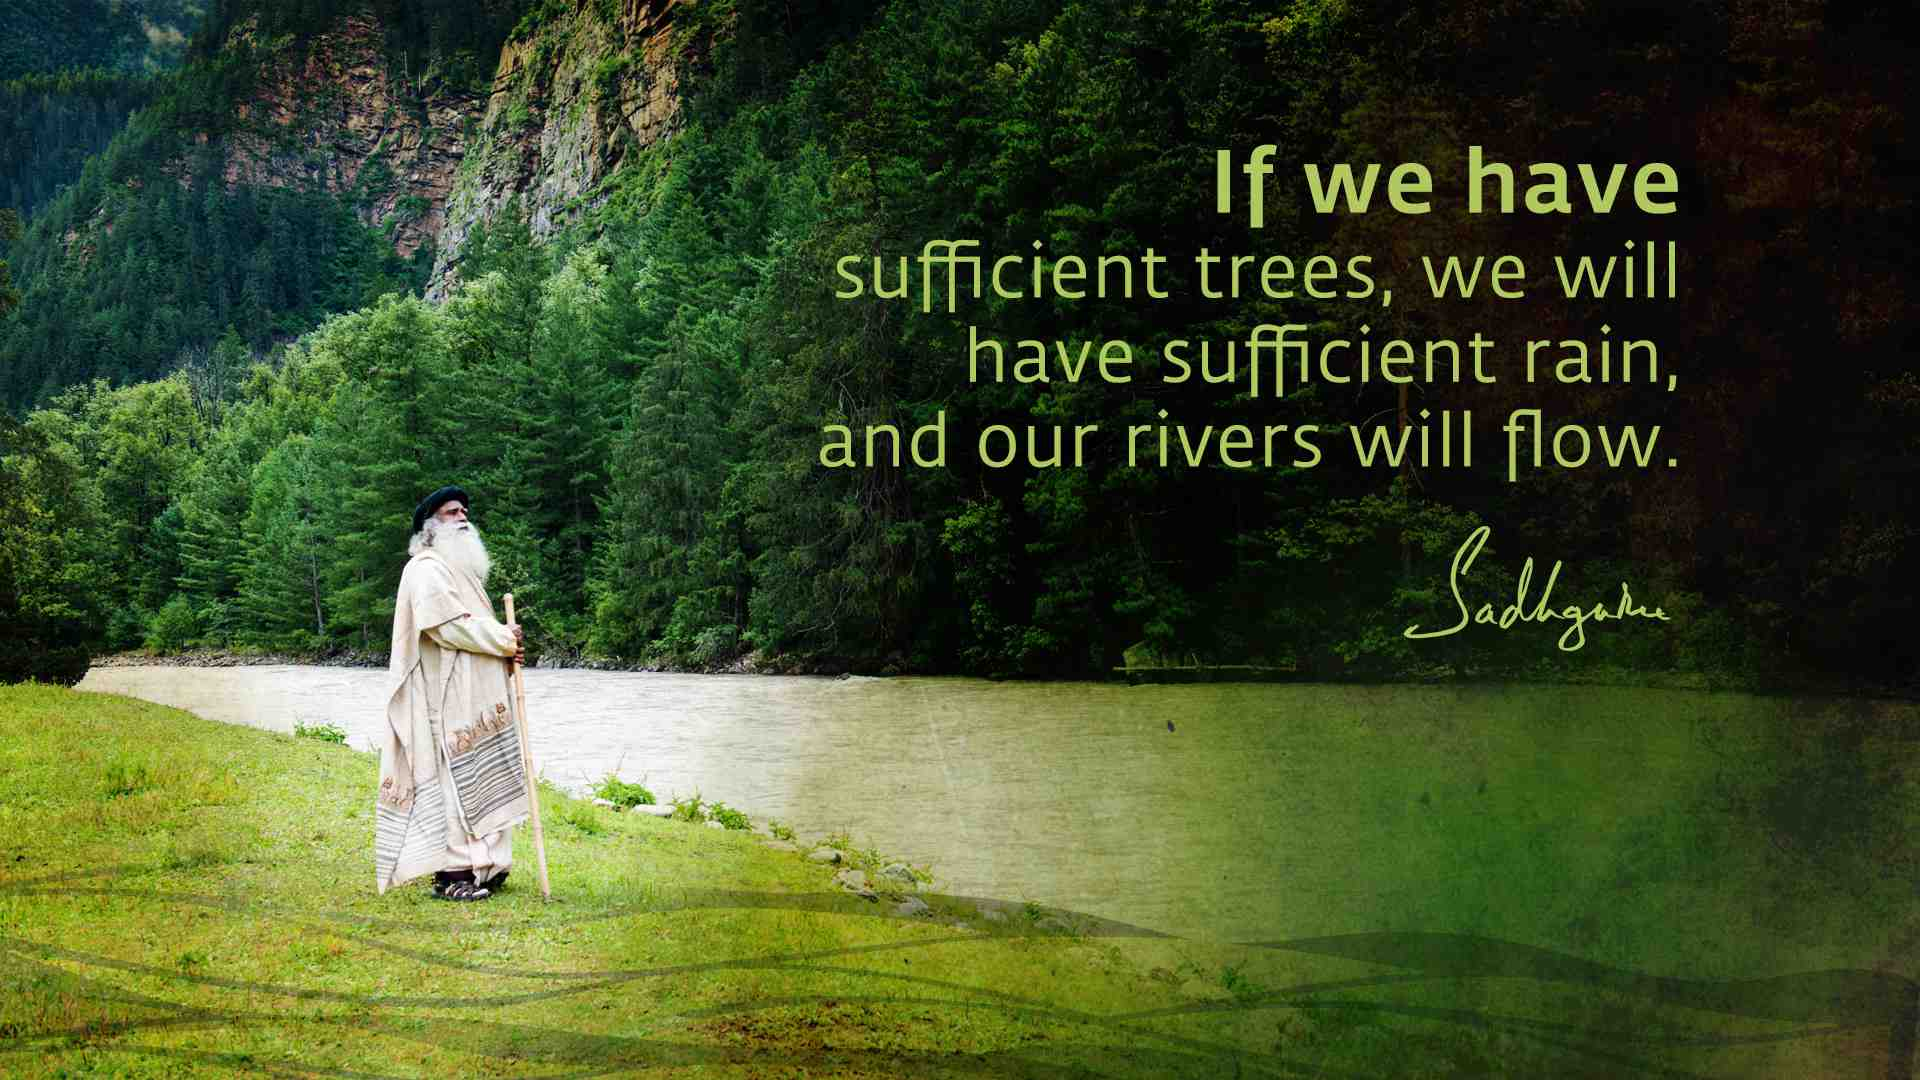 Landscape Quotes Sadhguru's Quotes On Rivers  The Isha Blog